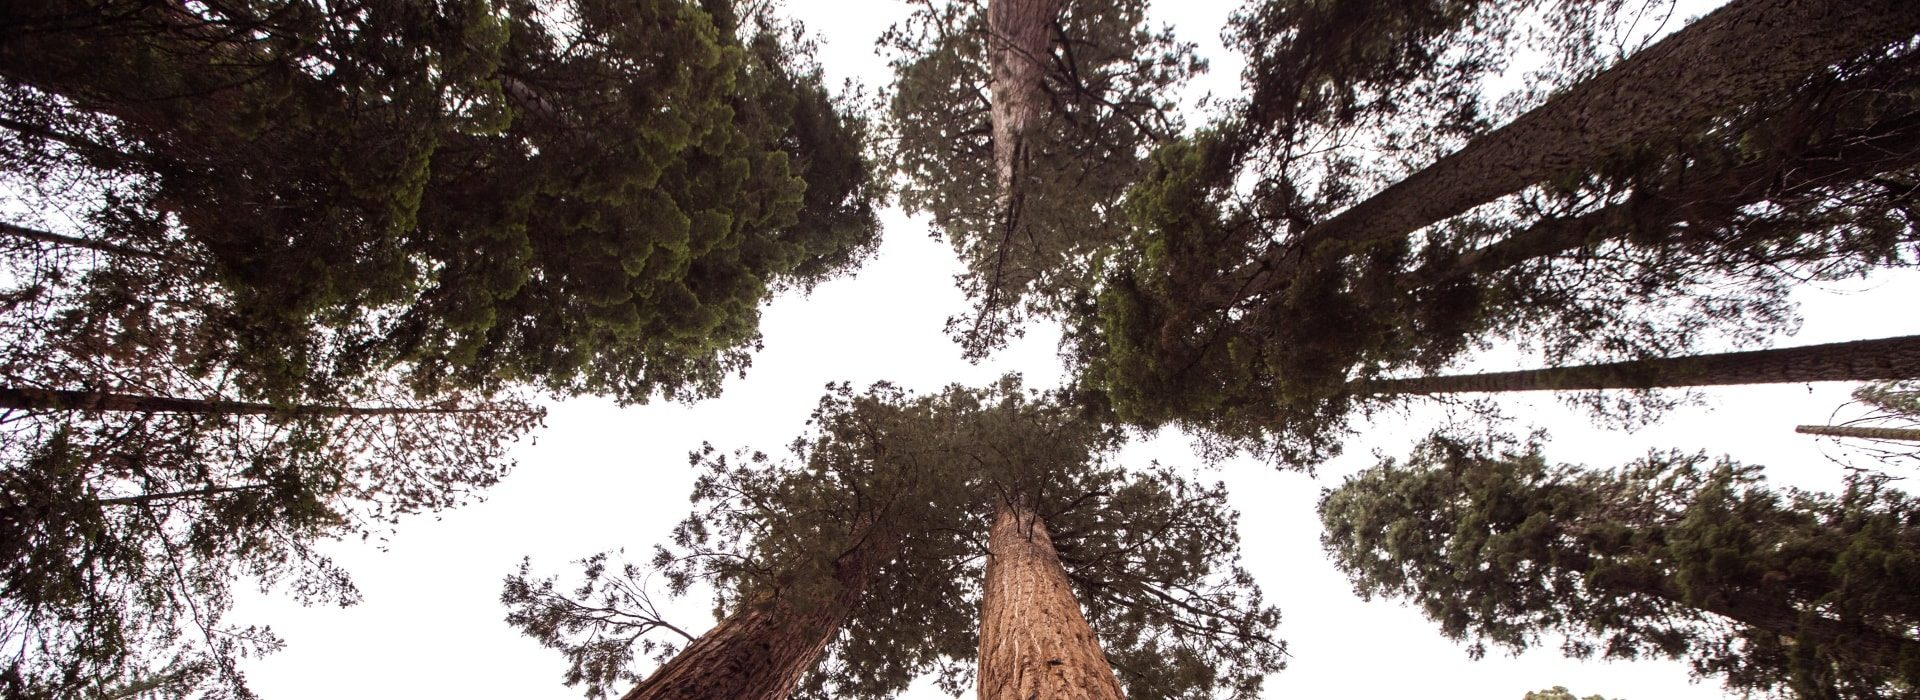 View of large trees from the ground looking up to the sky